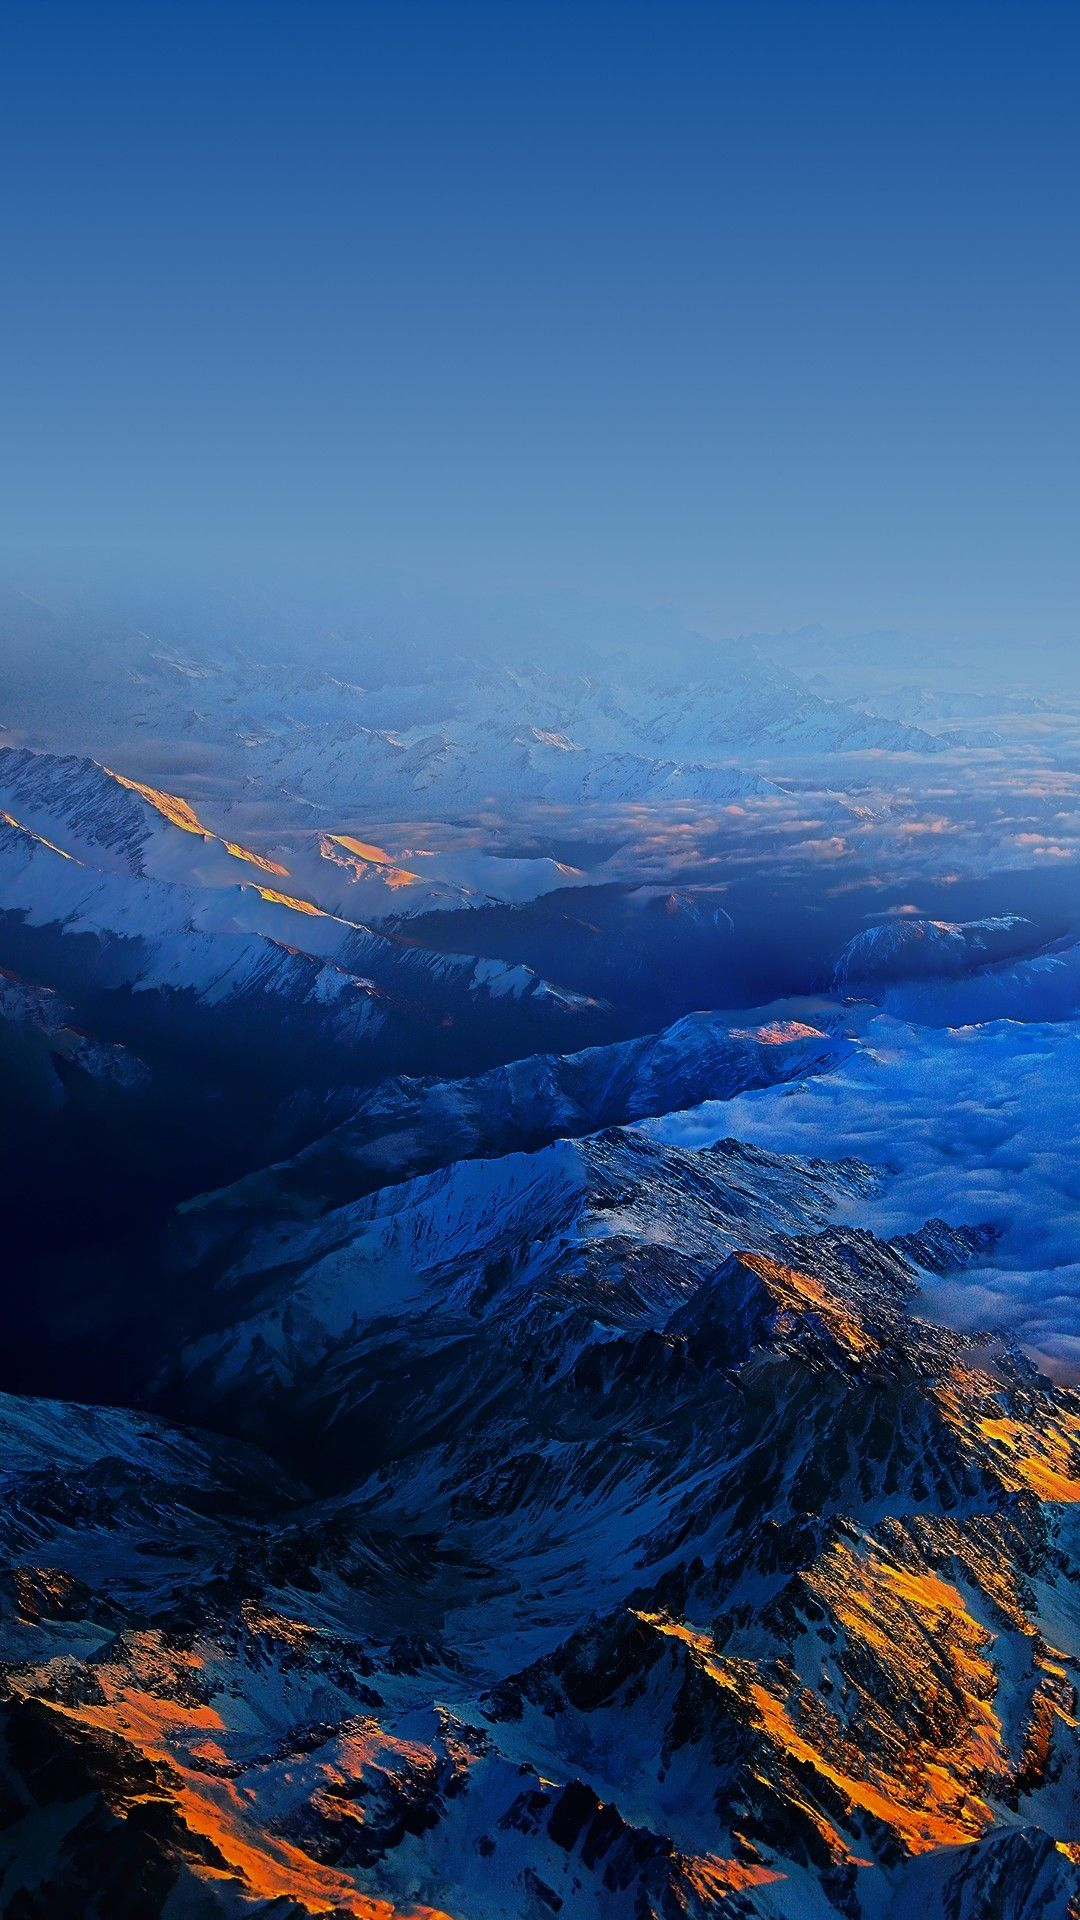 Moutain Tap to see more Vivo stockwallpapers